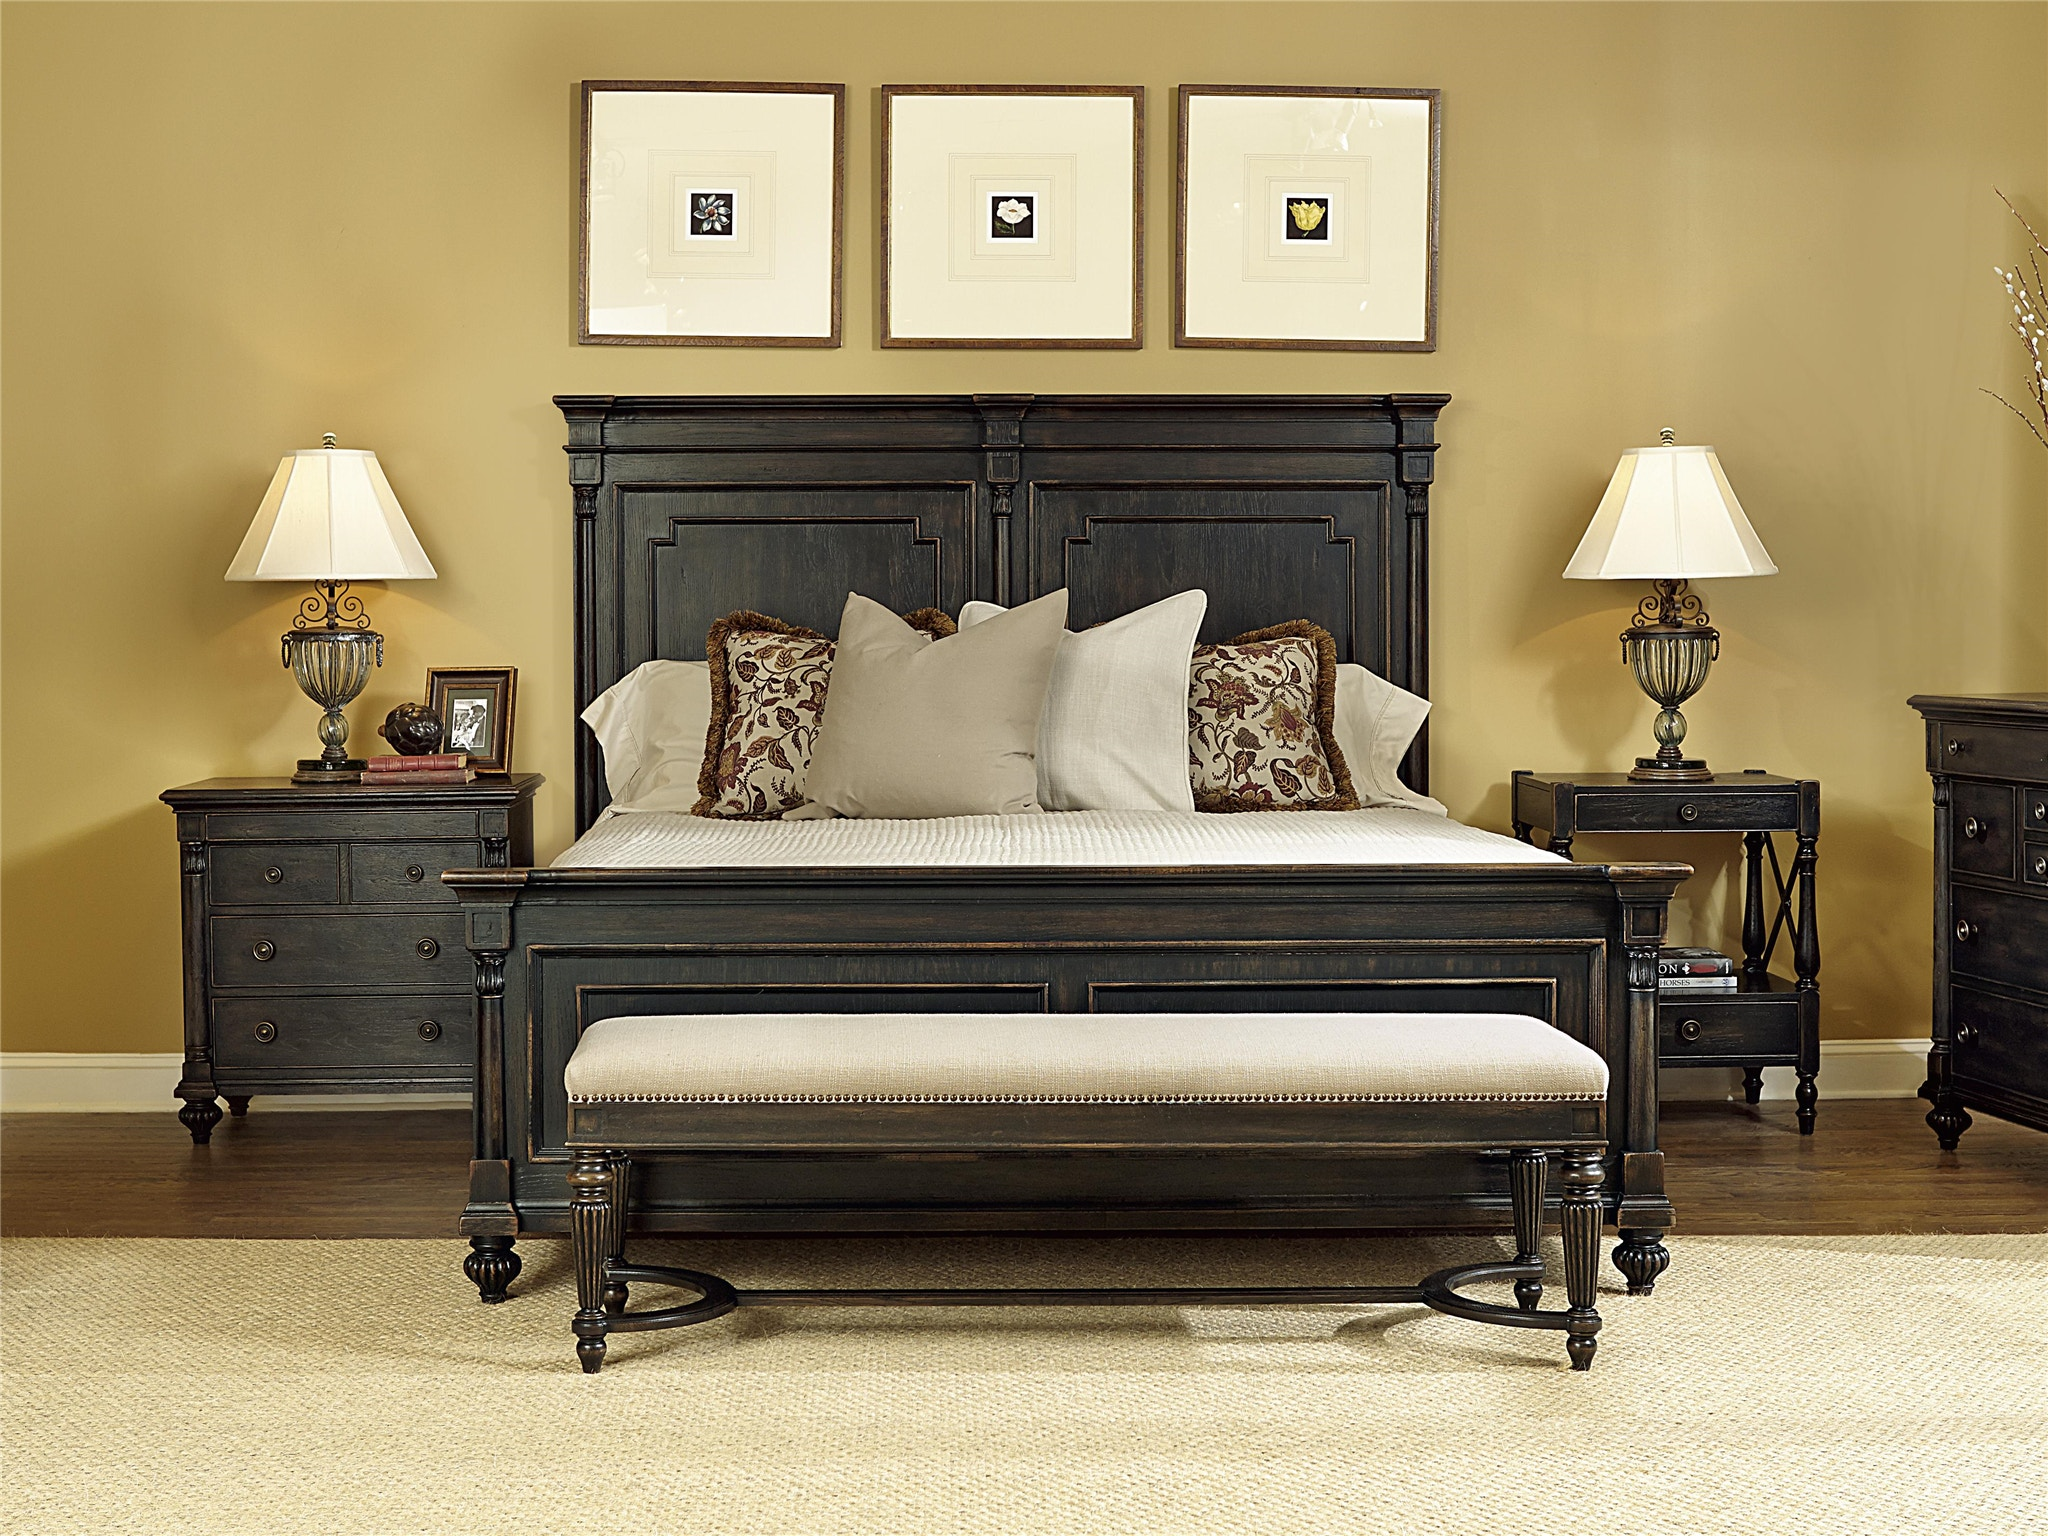 Stock Program PARLIAMENT KING BED MRF1510467168169ST From Walter E. Smithe  Furniture + Design